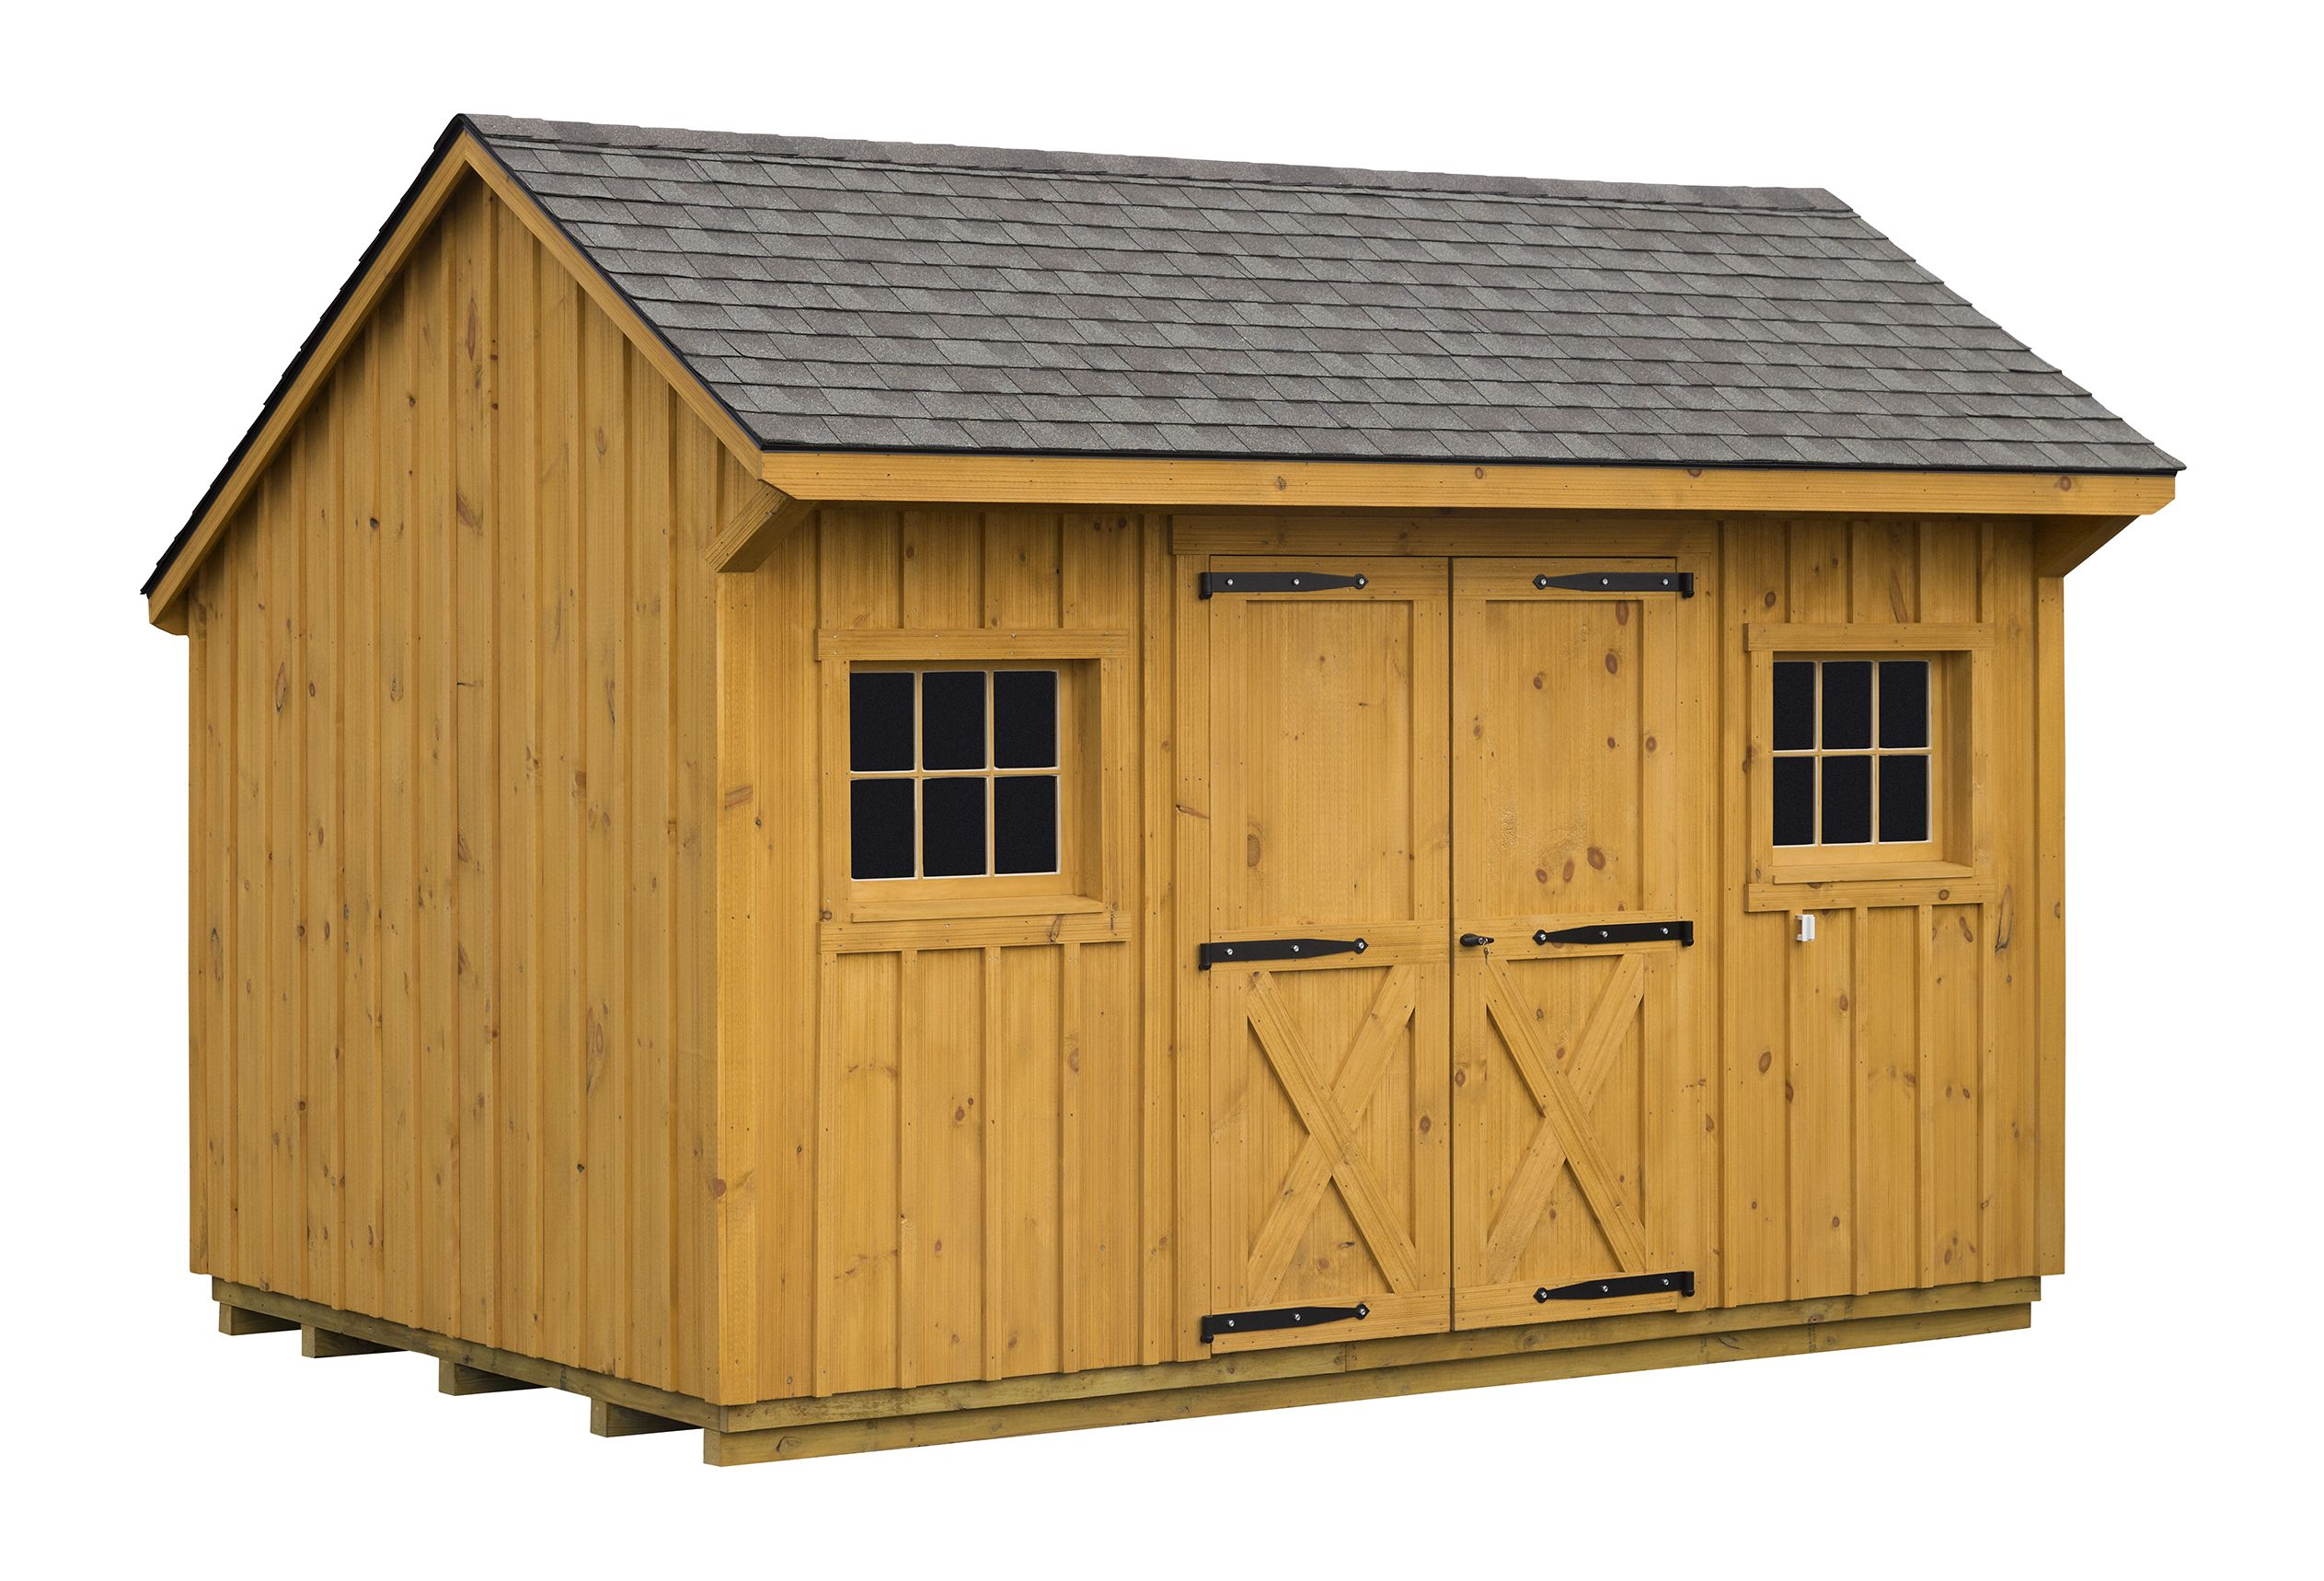 Horizon structures 10x14 pine board and batten backyard for Board and batten shed plans